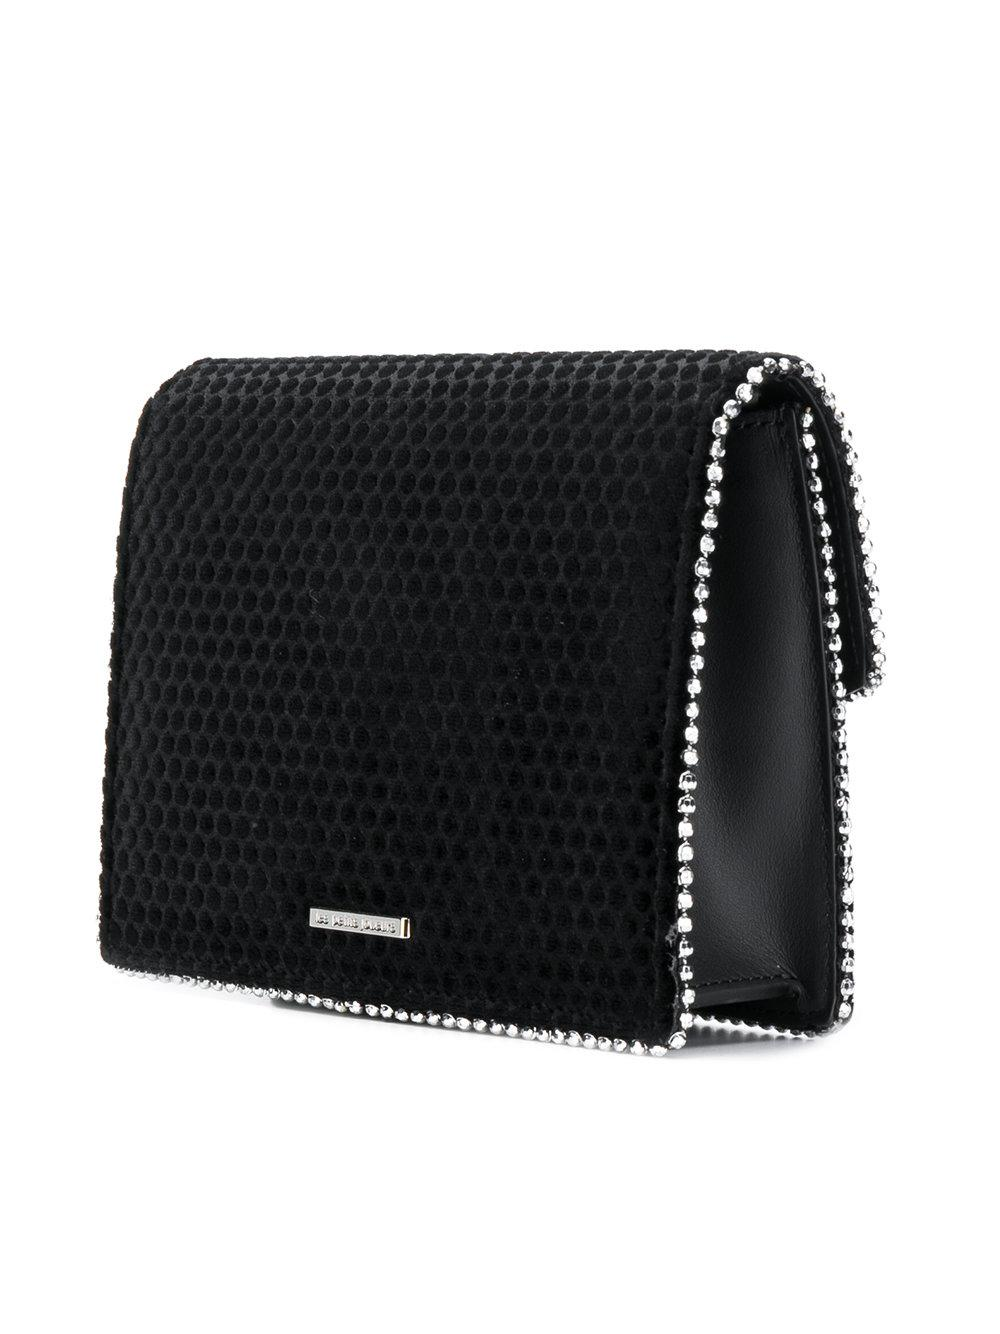 Les Petits Joueurs Leather Embellished Heart Crossbody Bag in Black